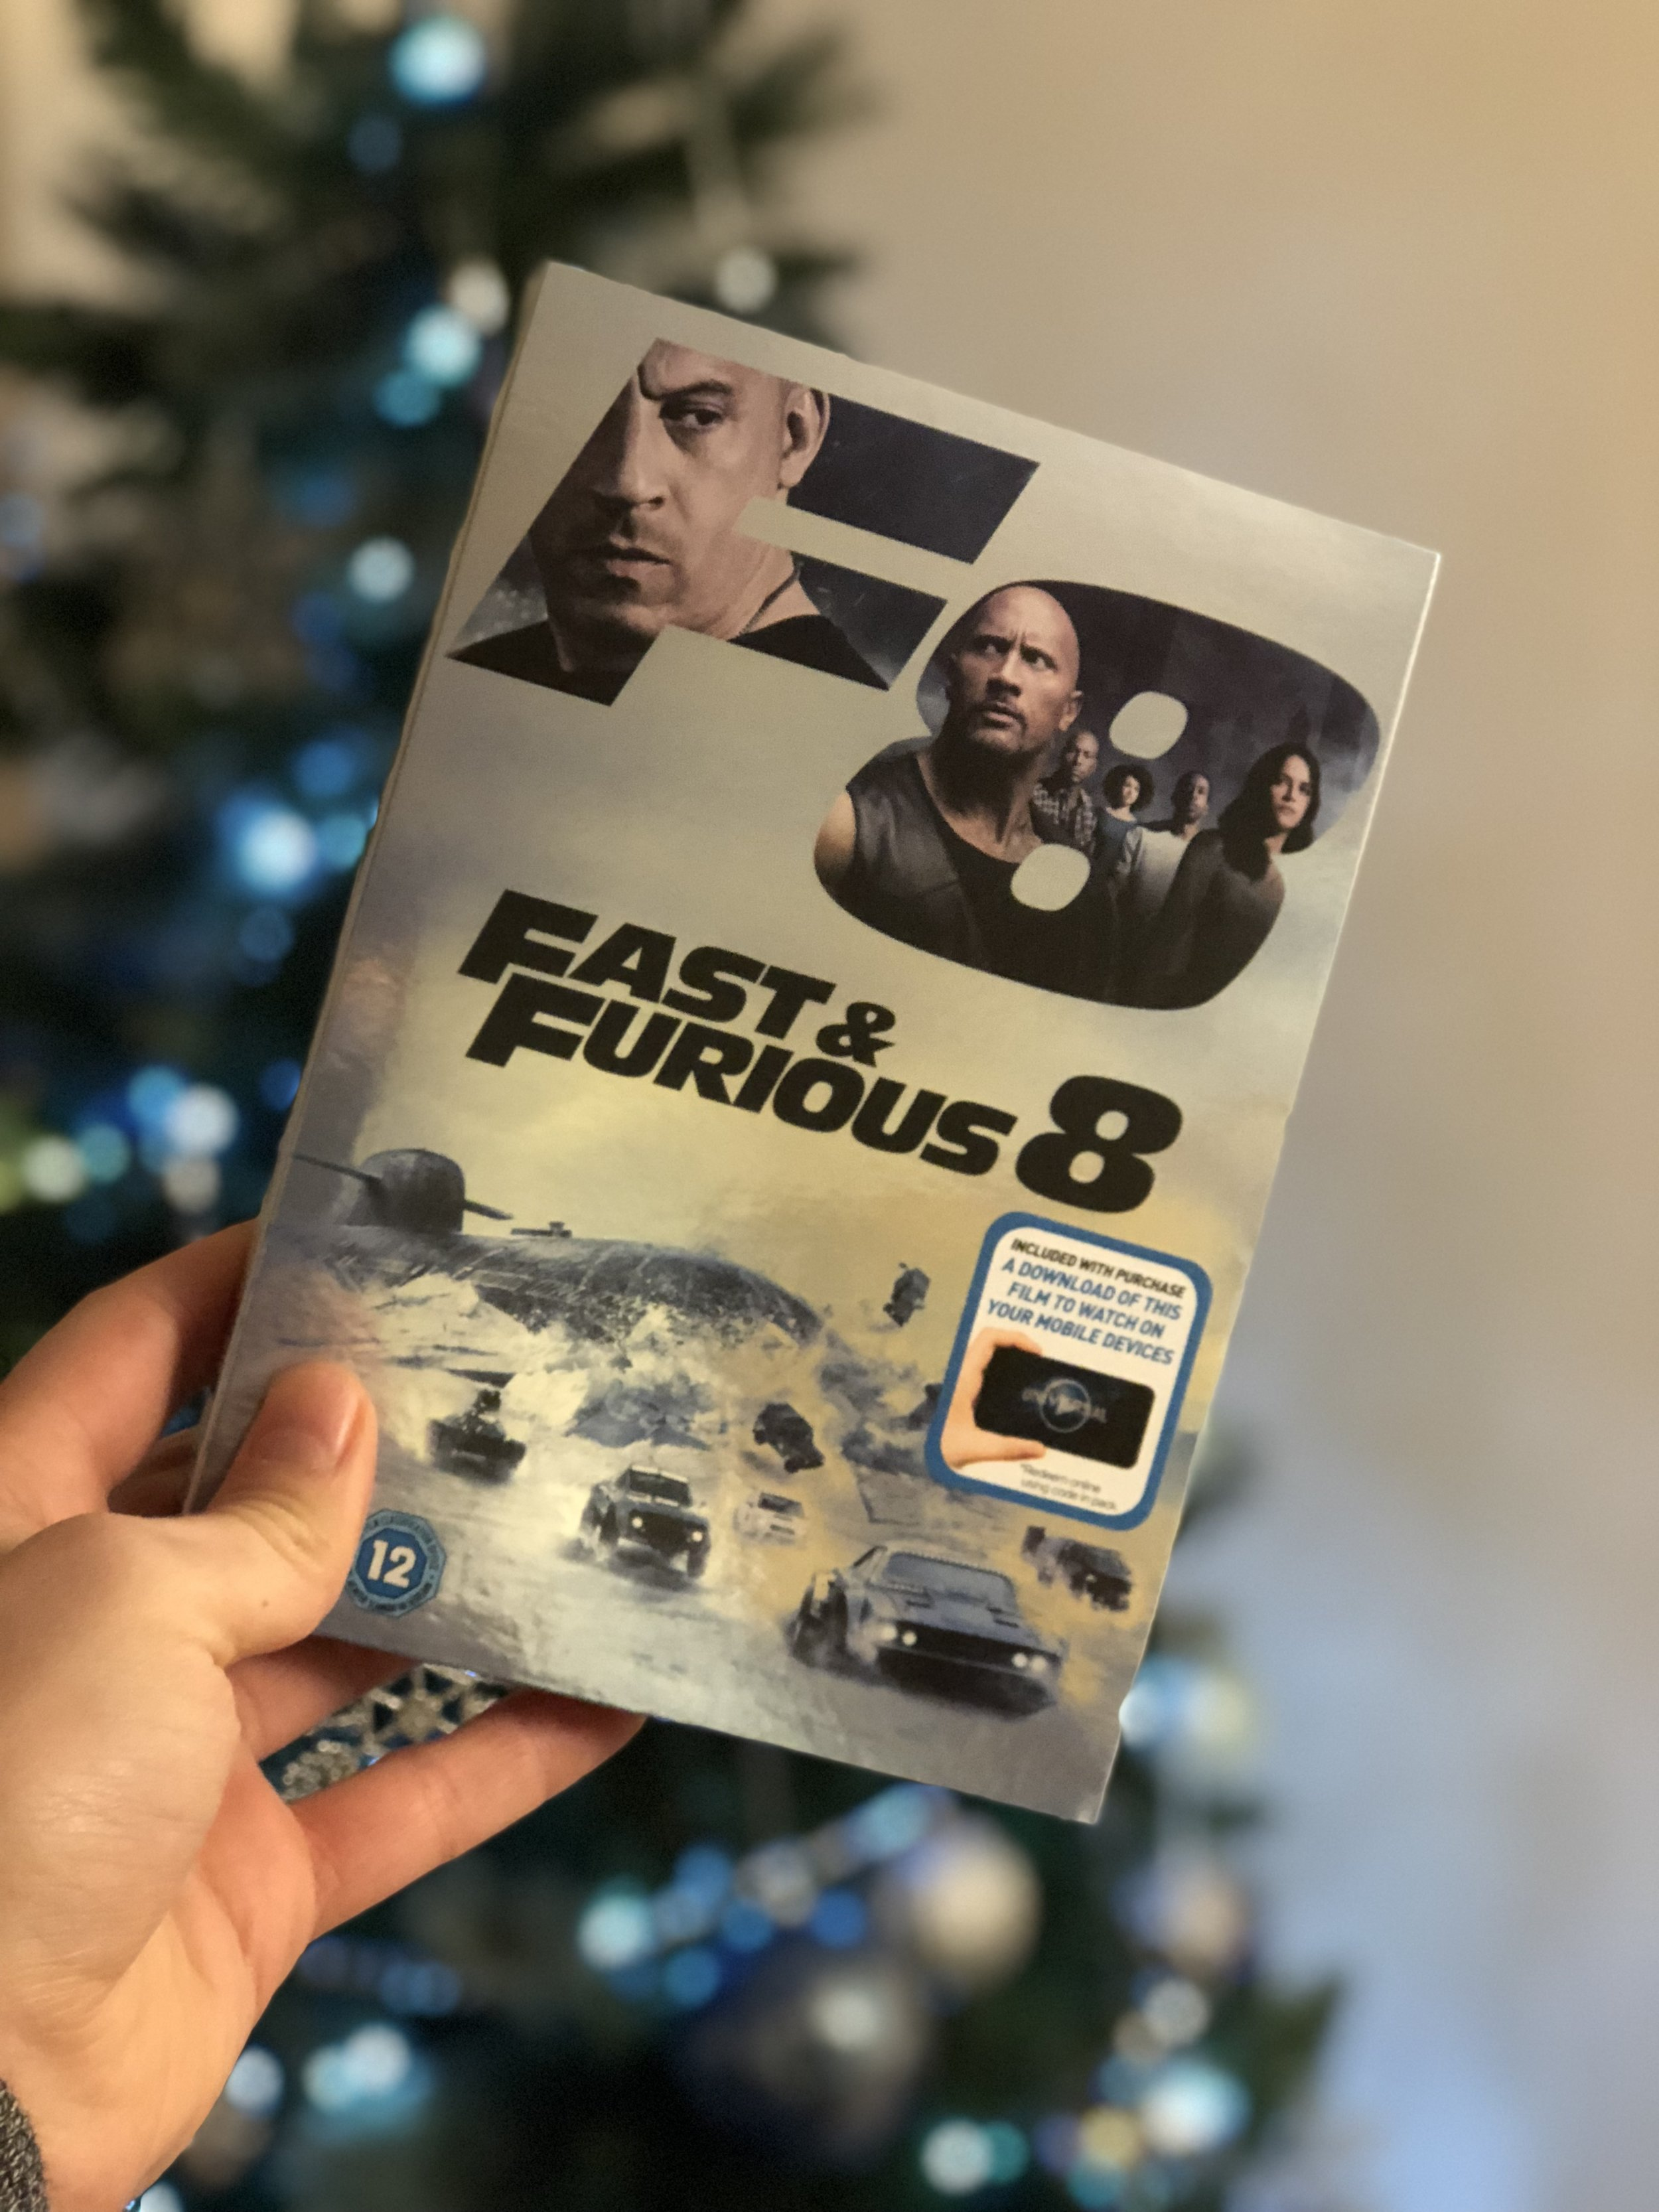 Fast & Furious 8 - £10